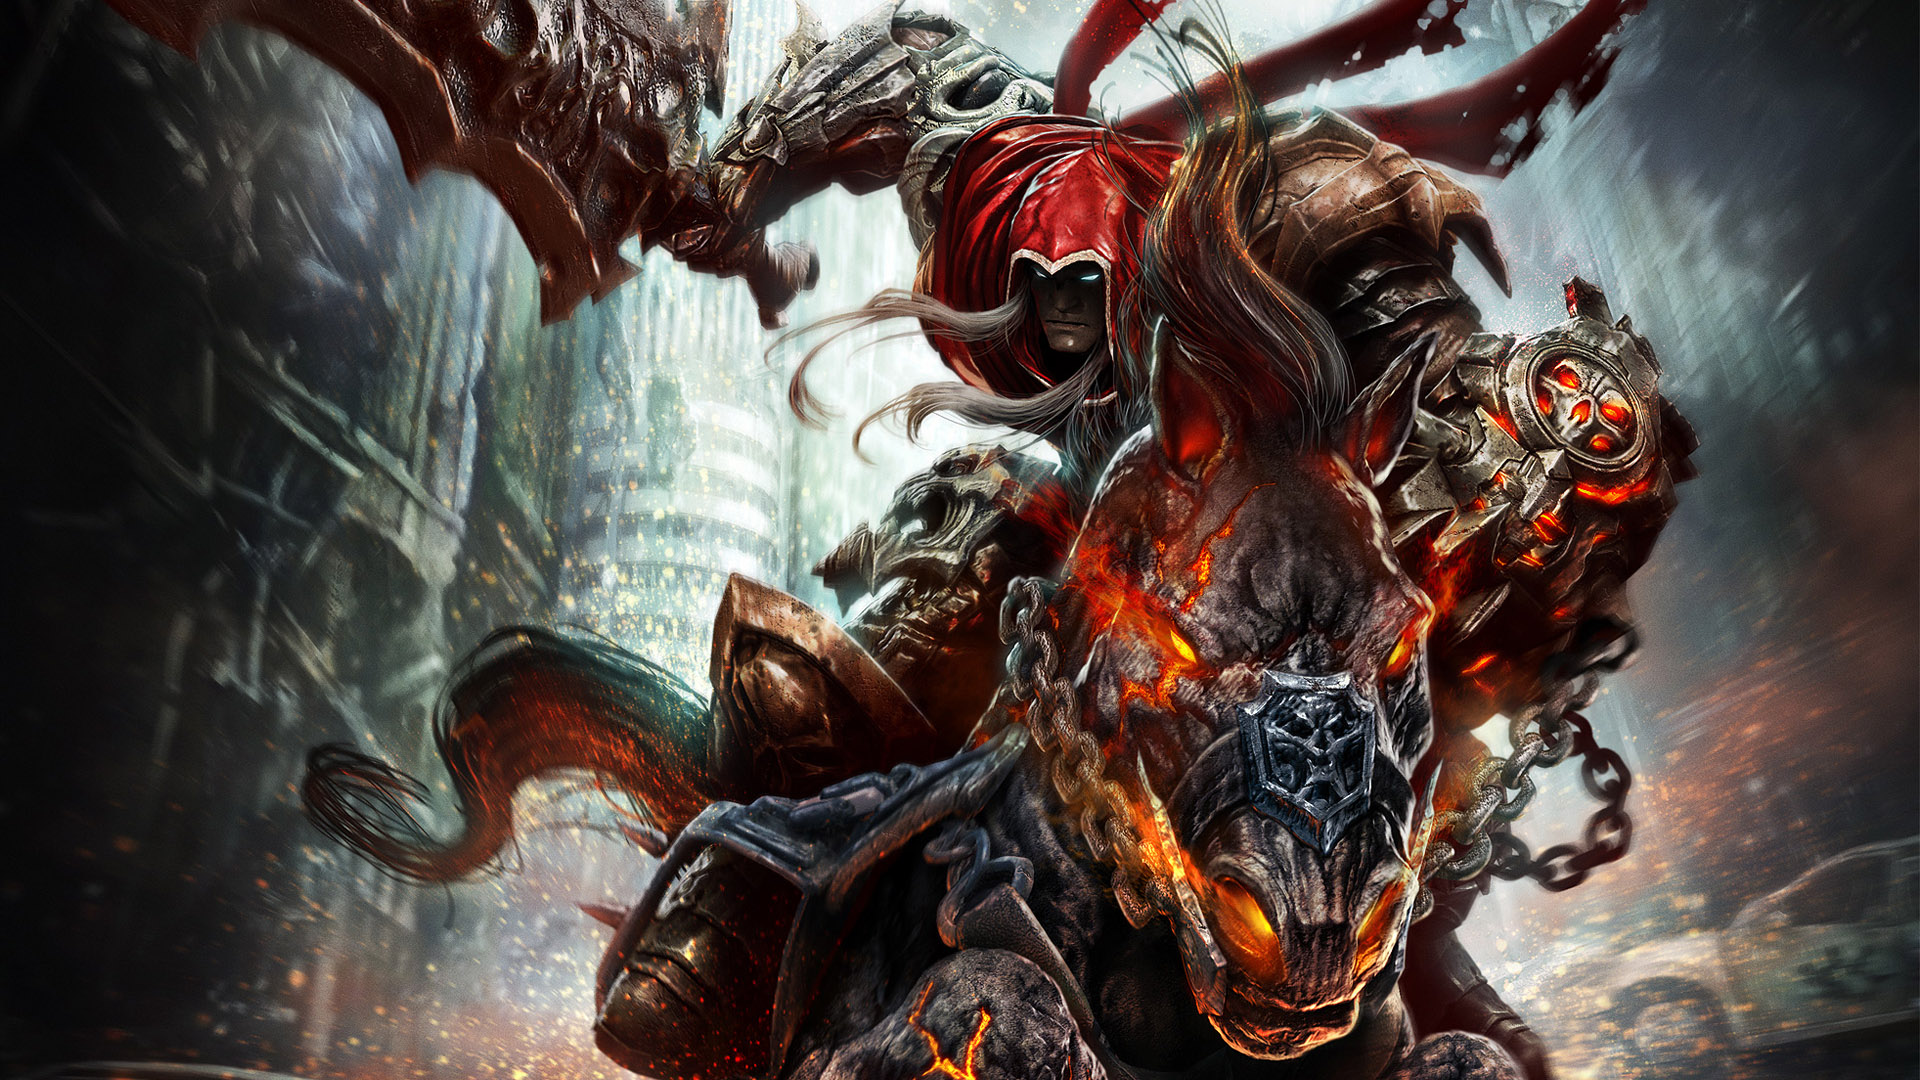 Video Game - Darksiders  Wallpaper